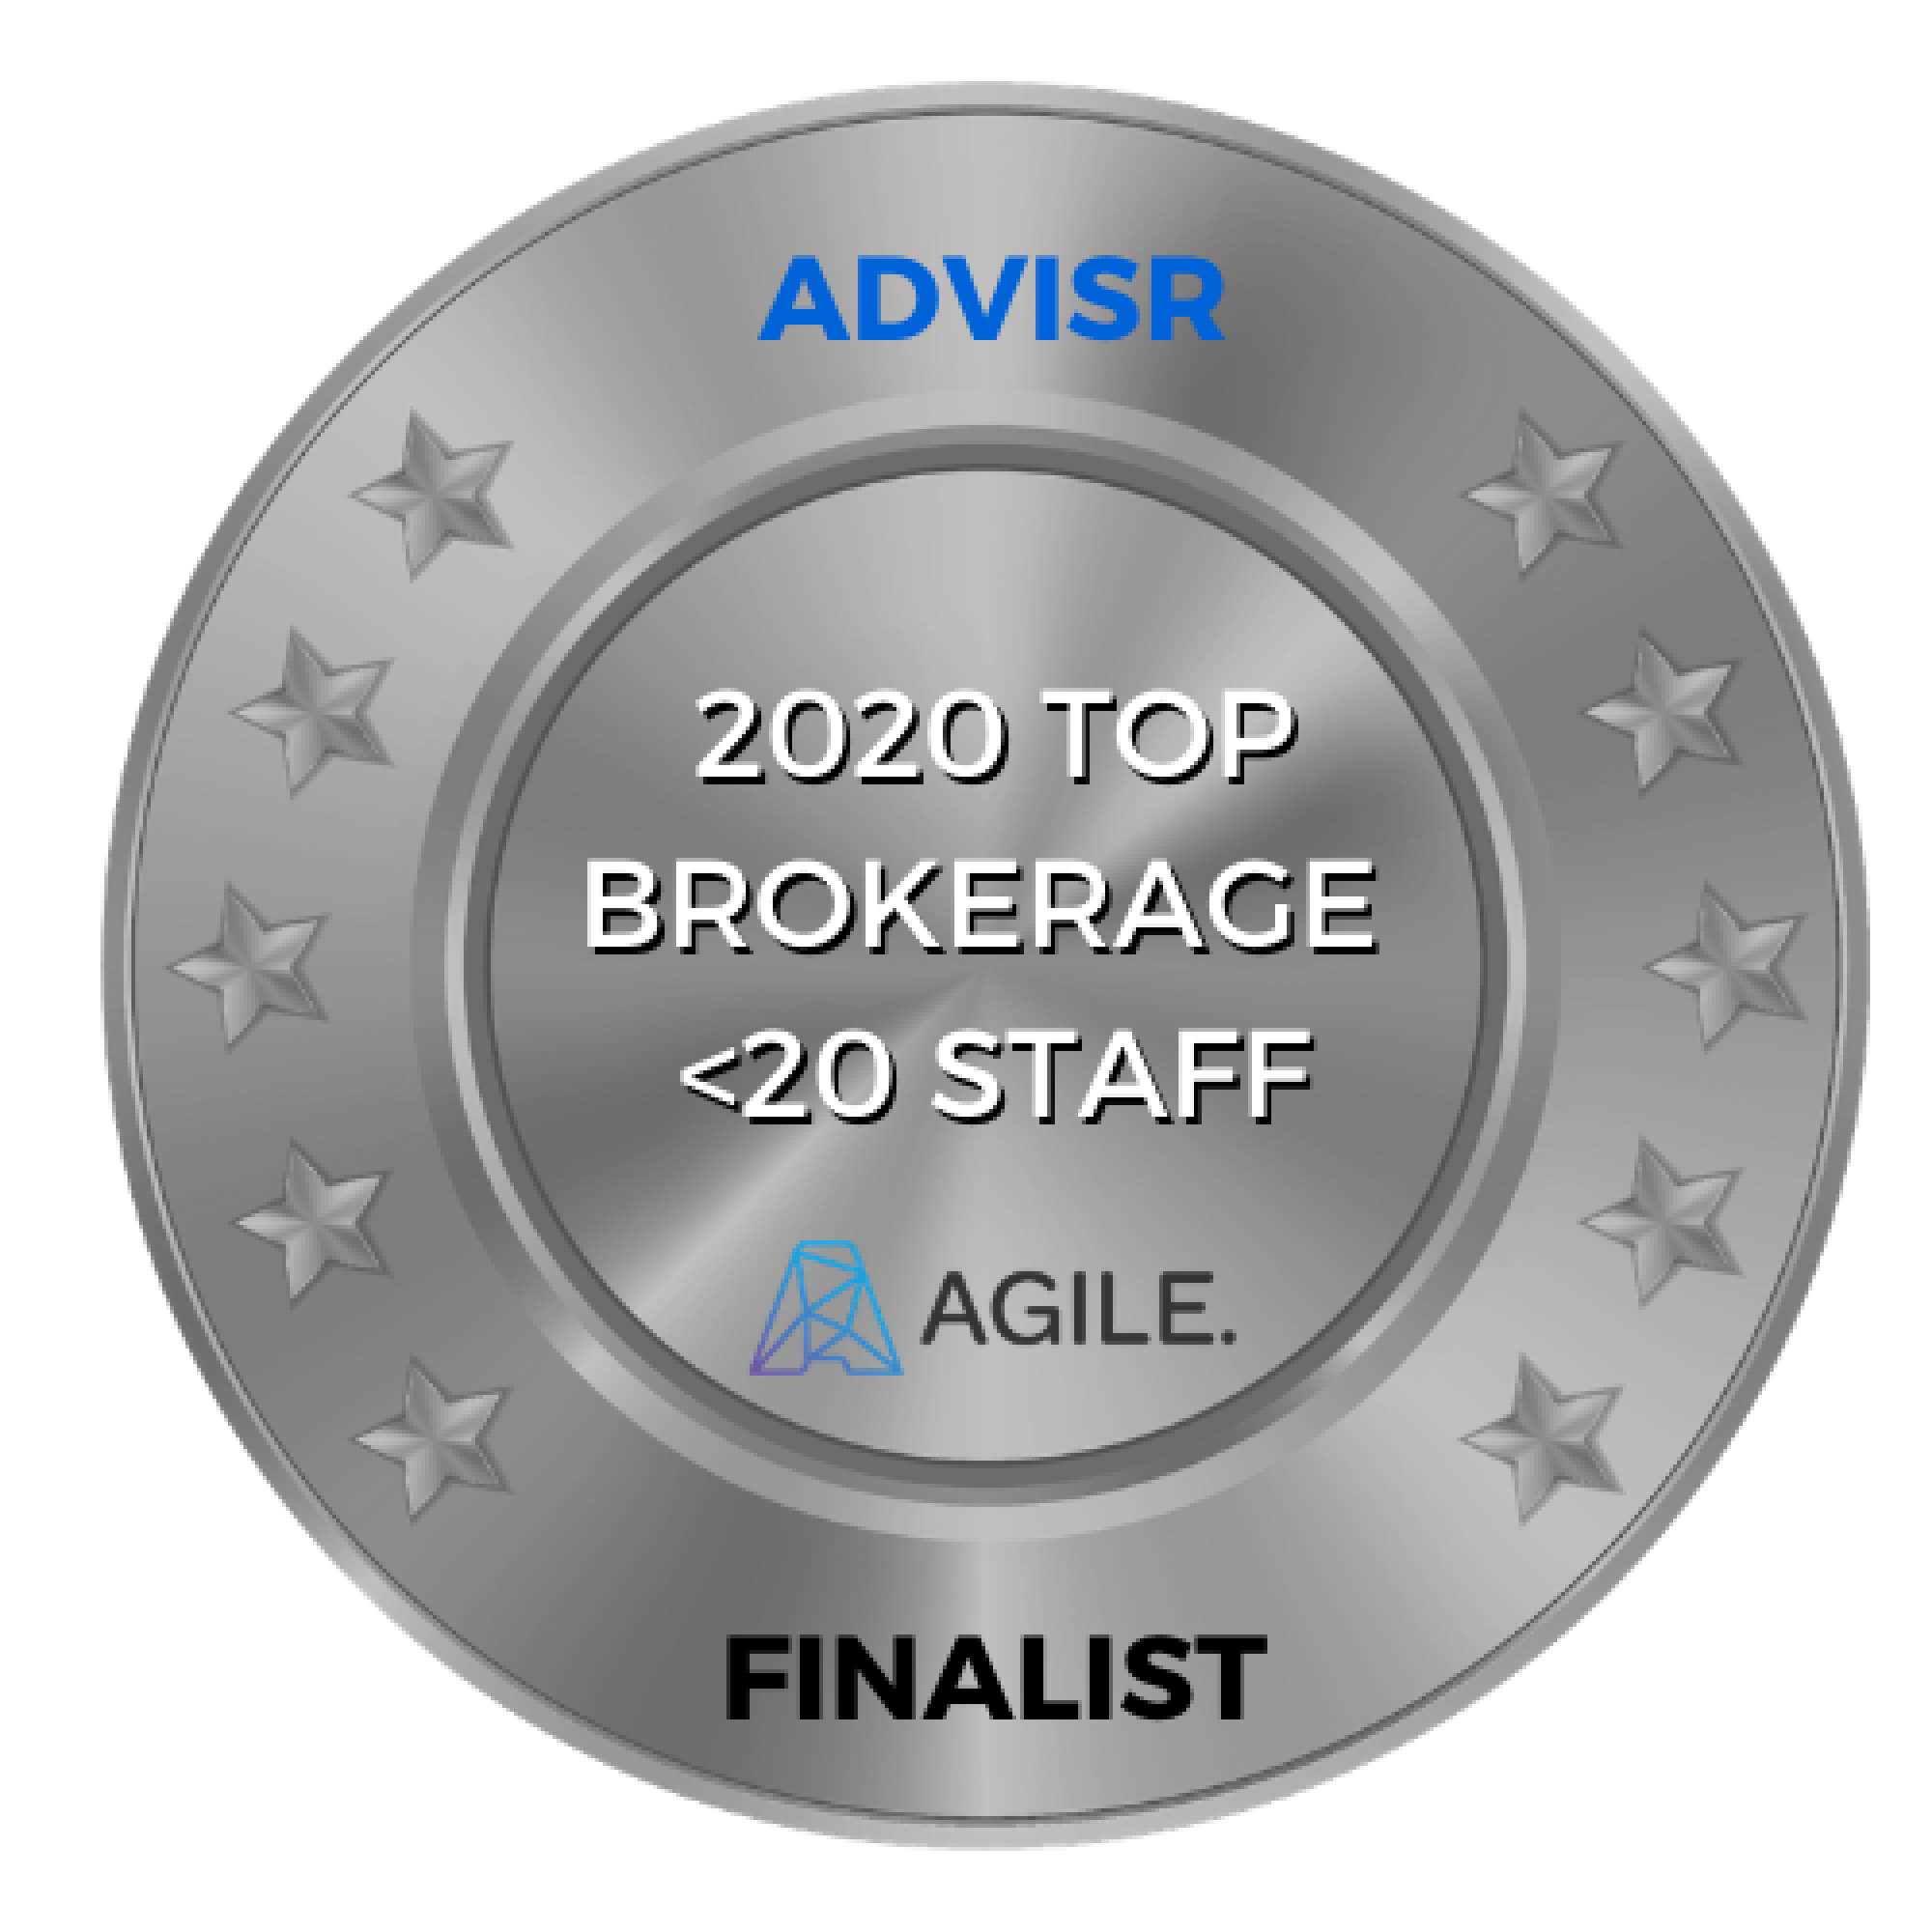 Advisr Insurance Broker Awards 2020 Finalist | Top Brokerage <20 staff